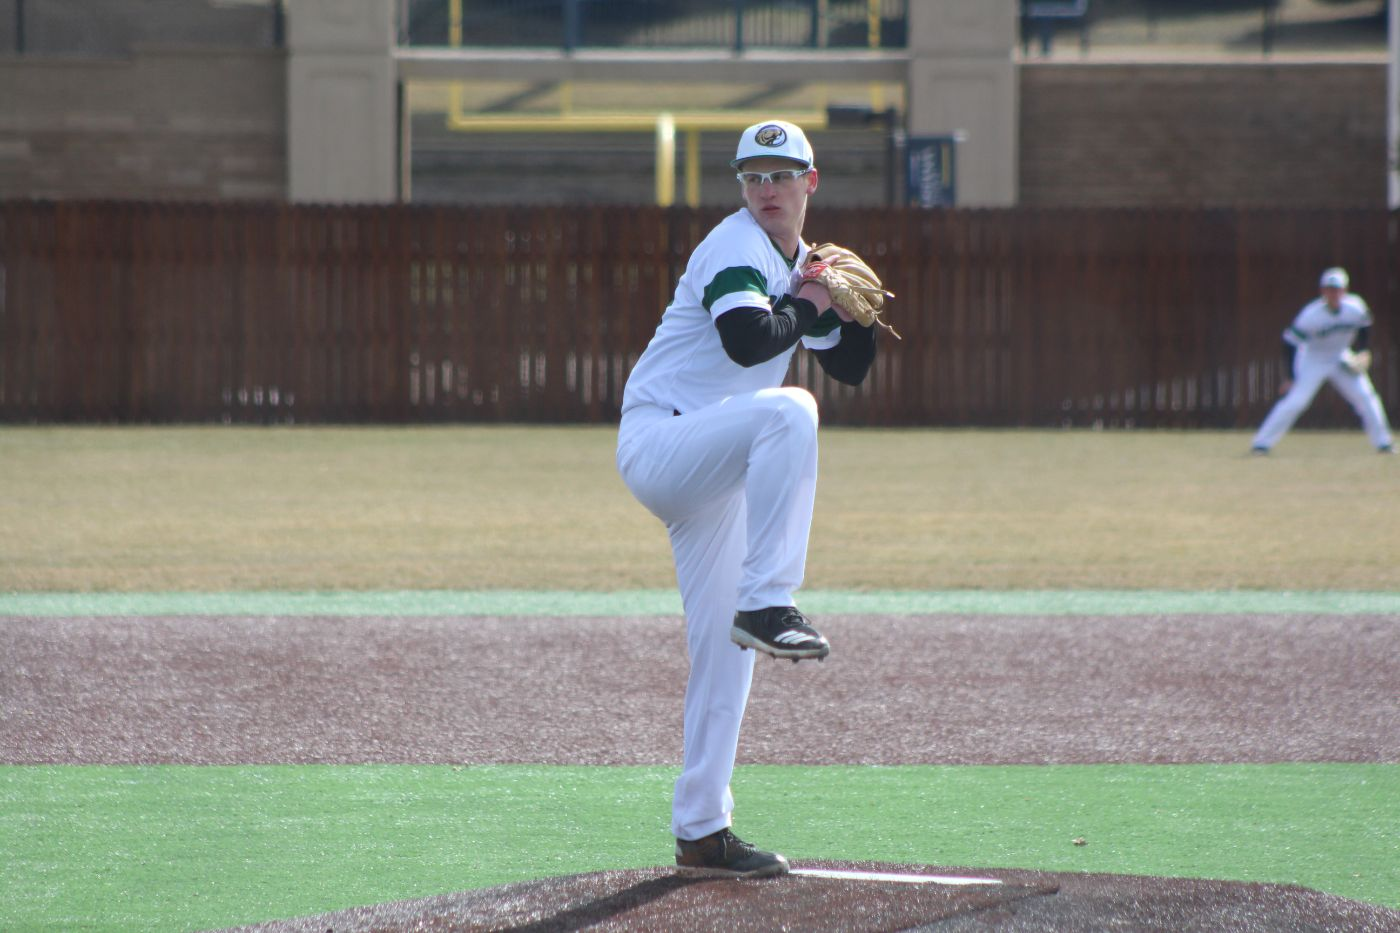 Vikings take opening day sweep over Beavers in doubleheader